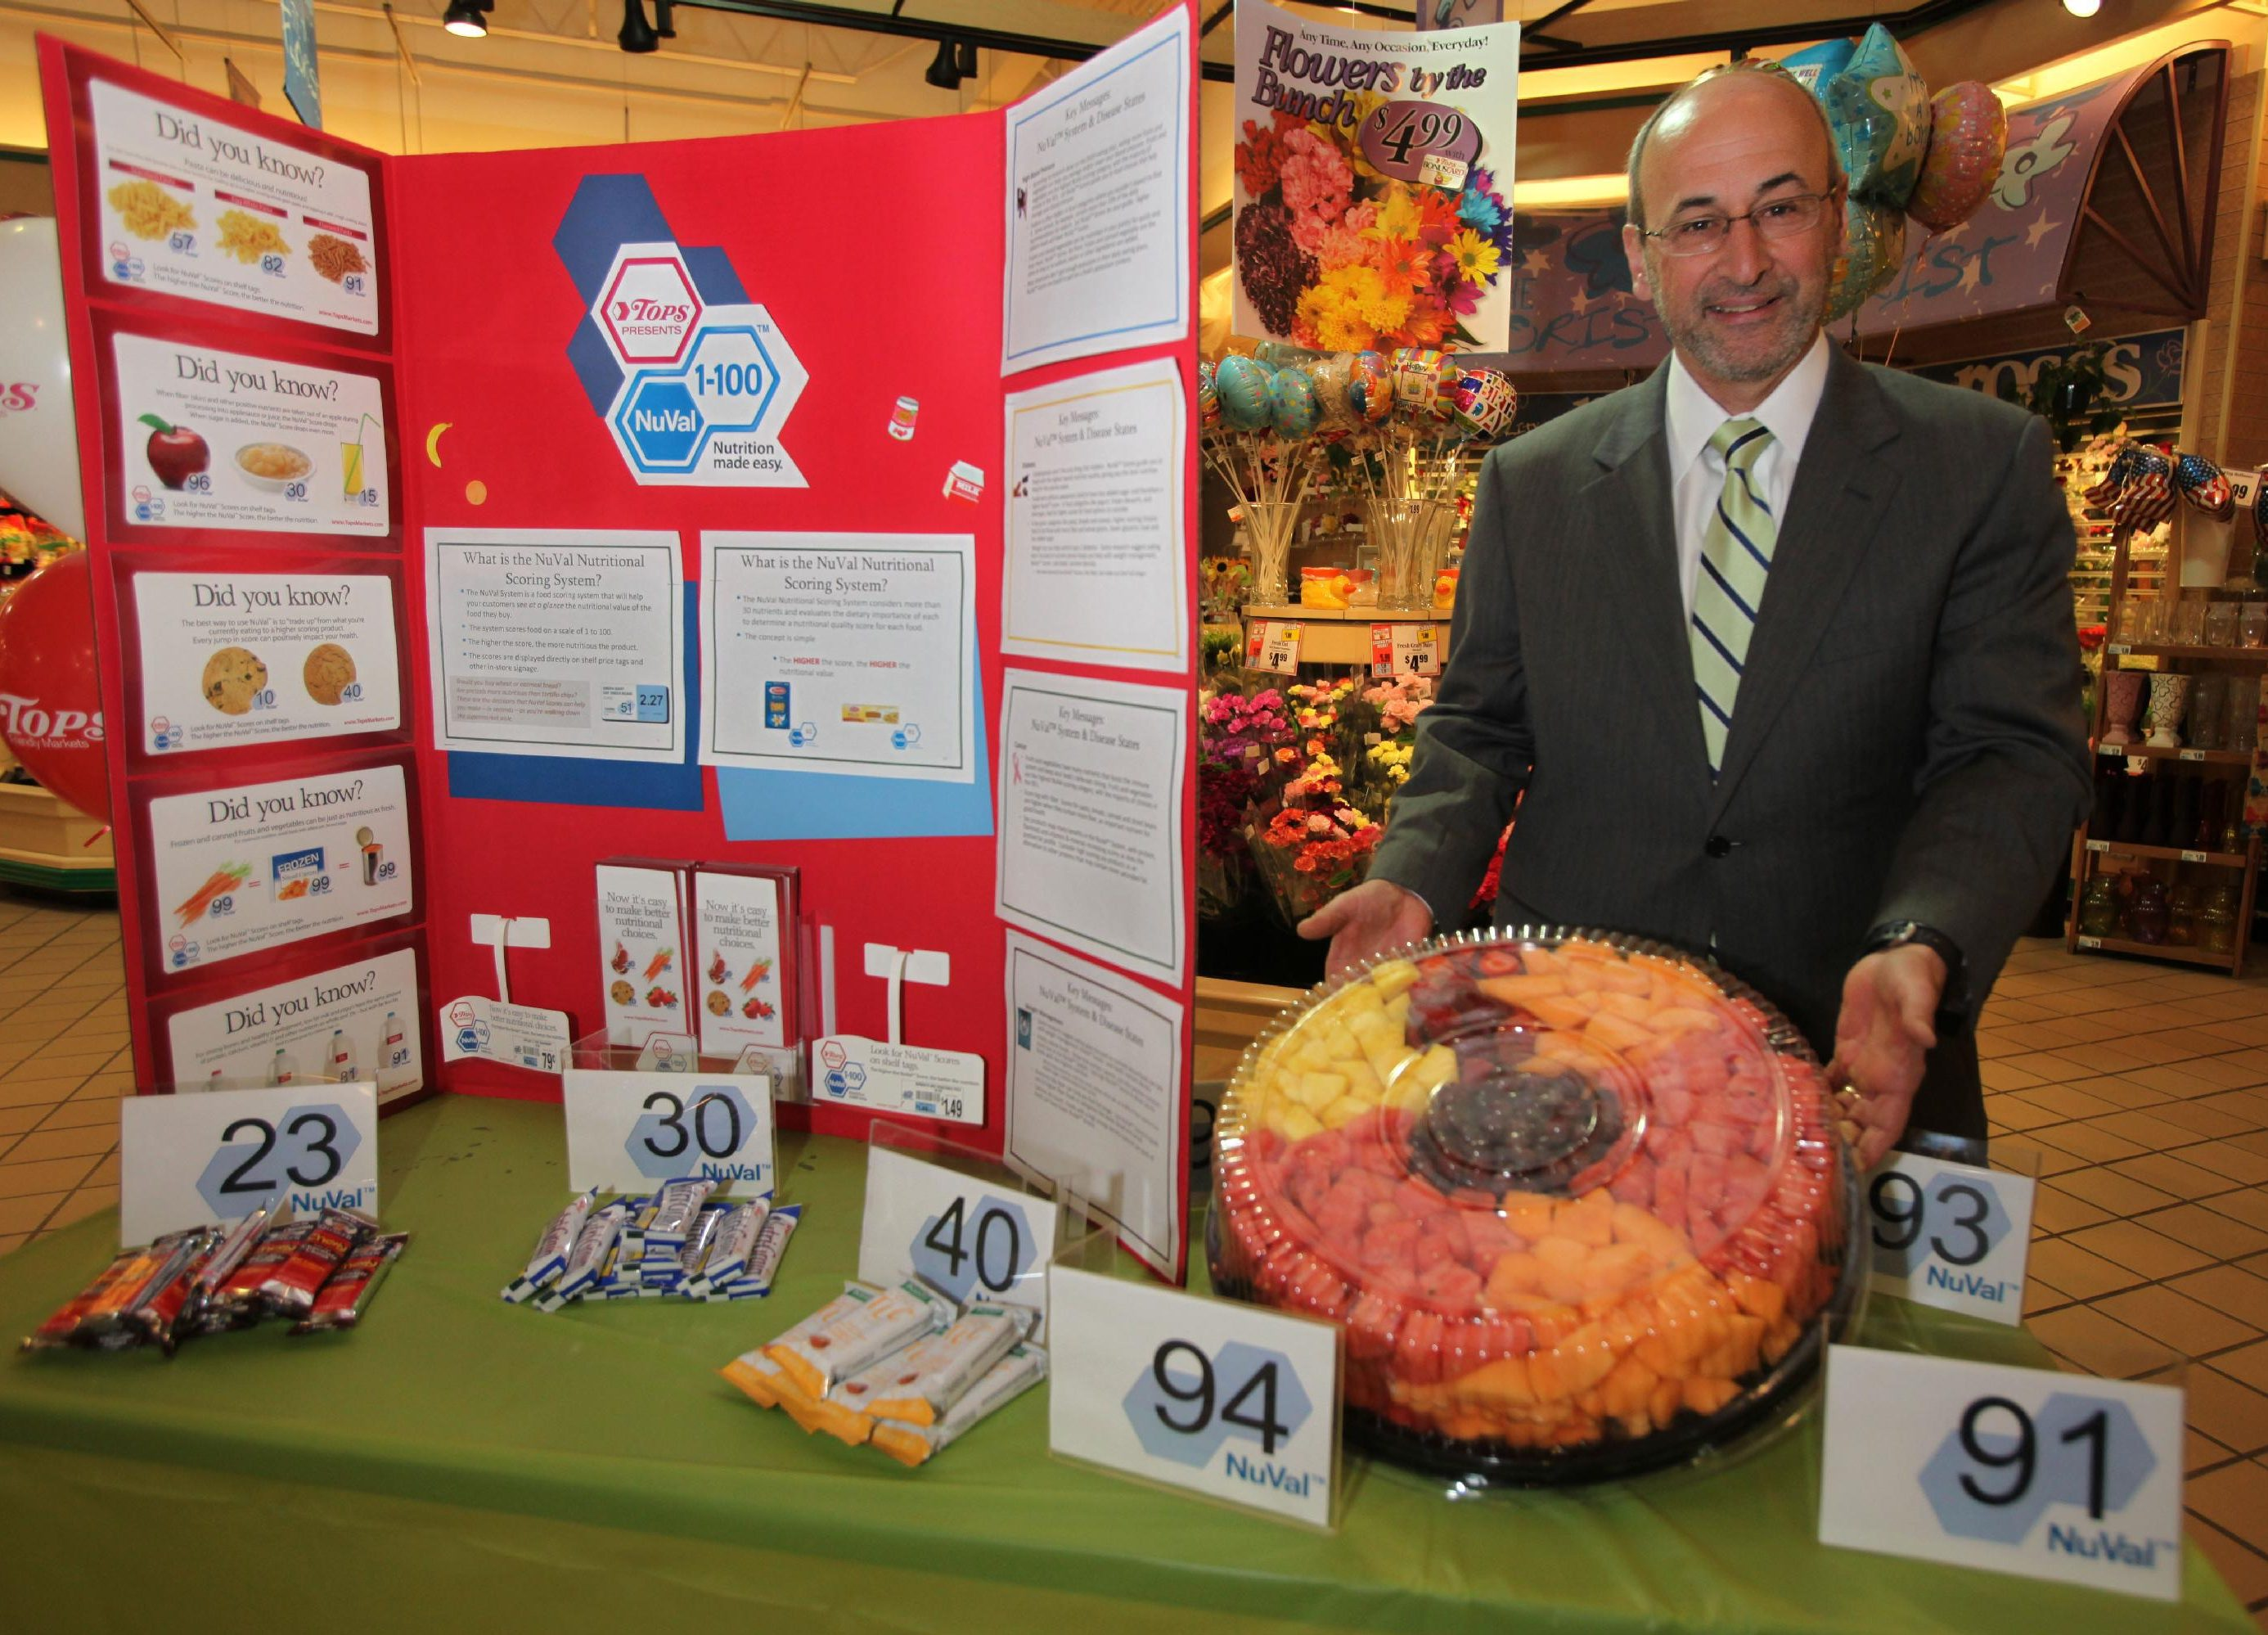 Tops Market Chairman and CEO Frank Curci holds a fruit tray at a display designed to highlight the new NuVal Nutritional Scoring System placed in all Tops locations.